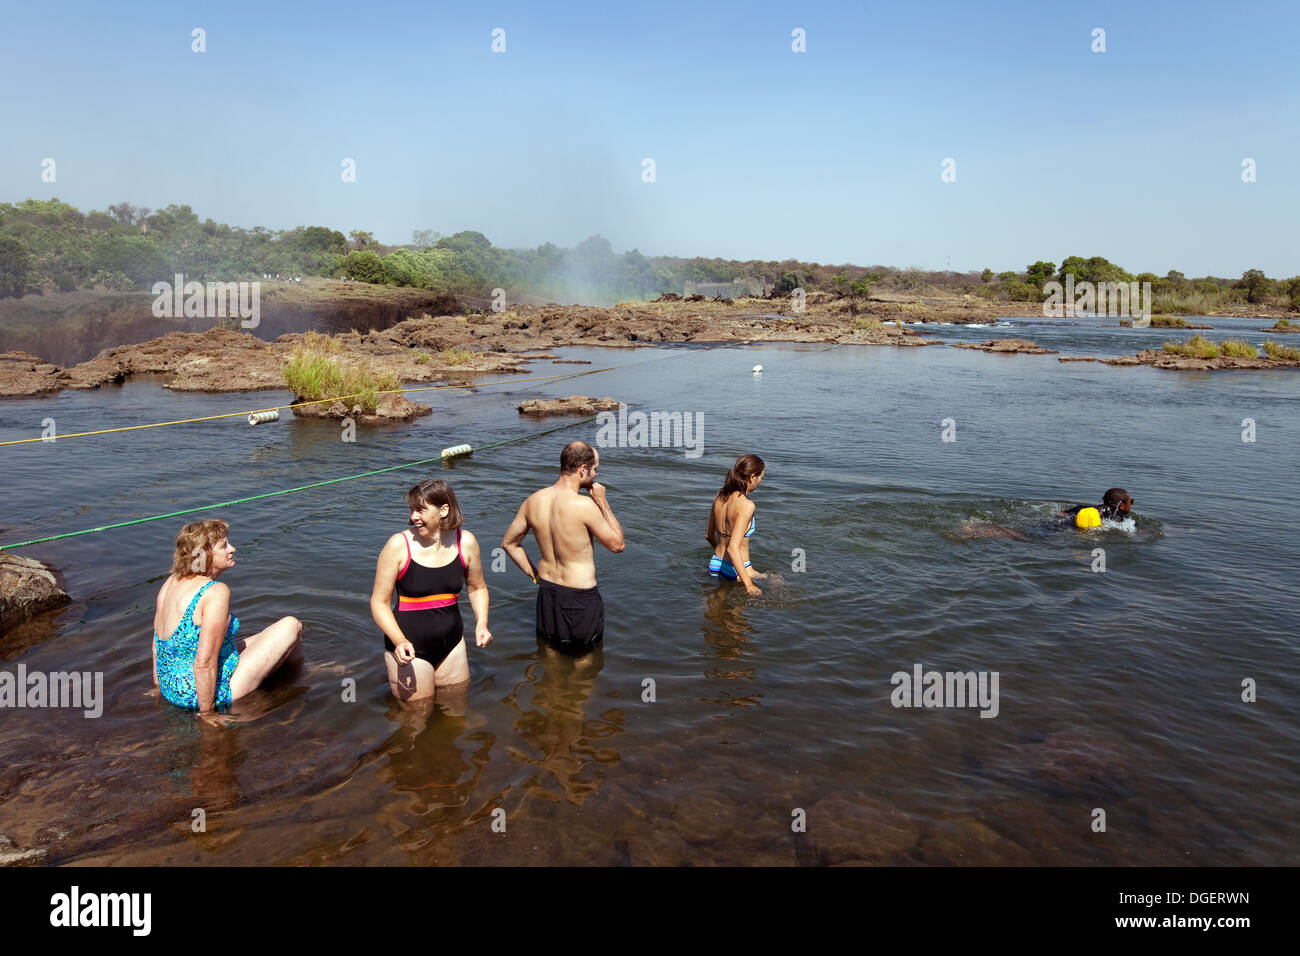 Tourists swimming out to Devils Pool at the edge of the Victoria Falls, Livingstone Island, Zambia africa - Stock Image